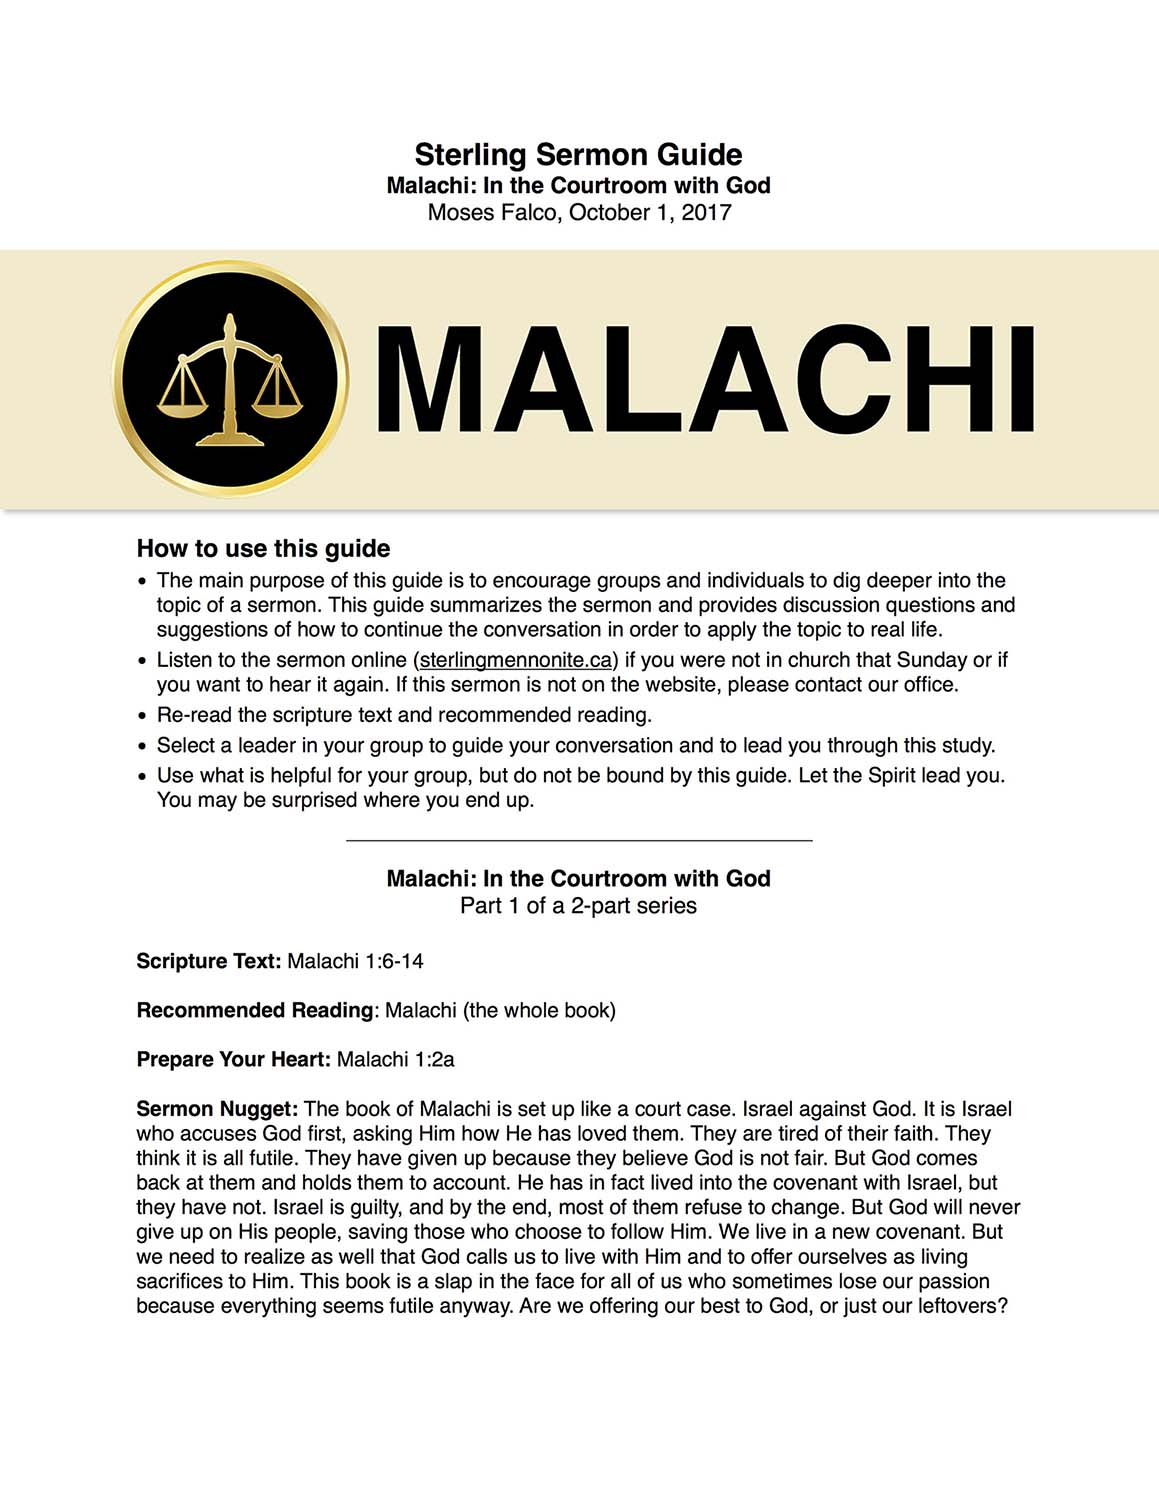 Malachi: In the Courtroom with God